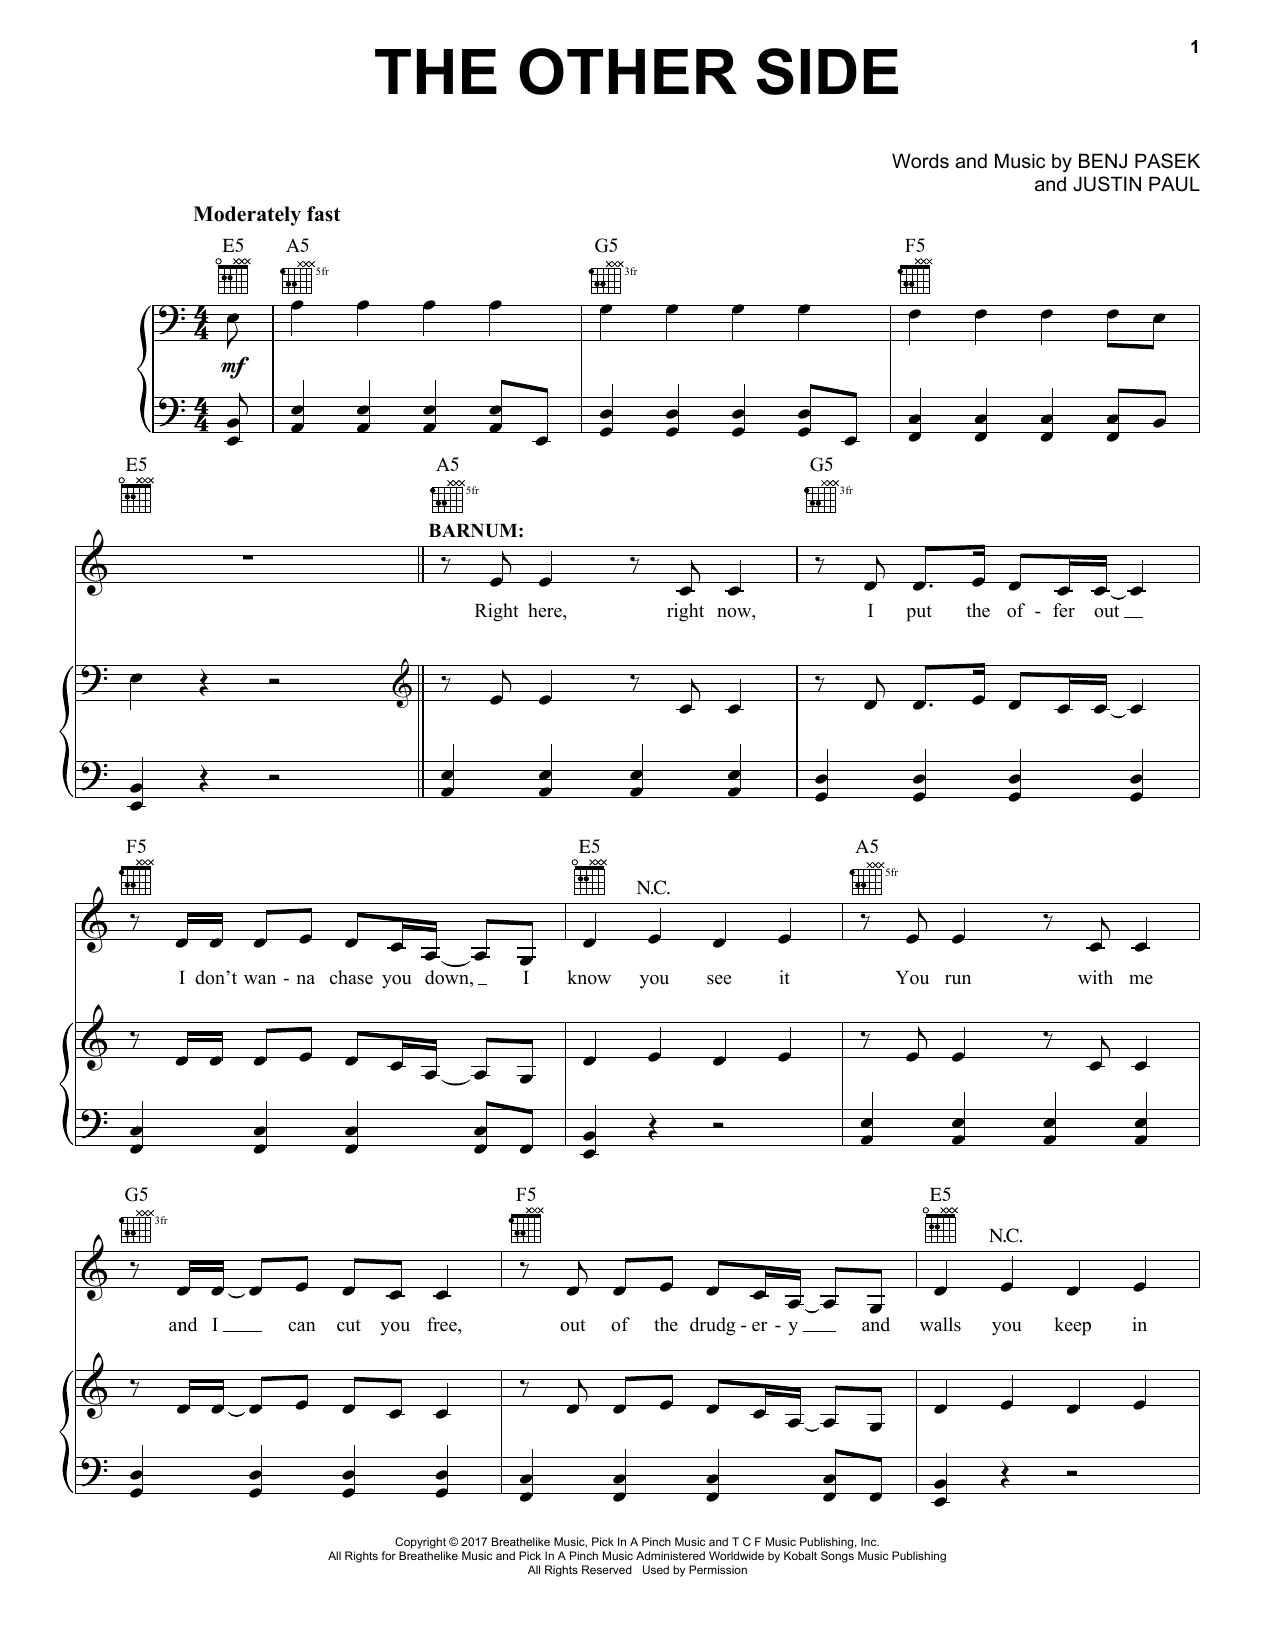 Pasek & Paul The Other Side (from The Greatest Showman) sheet music notes and chords. Download Printable PDF.